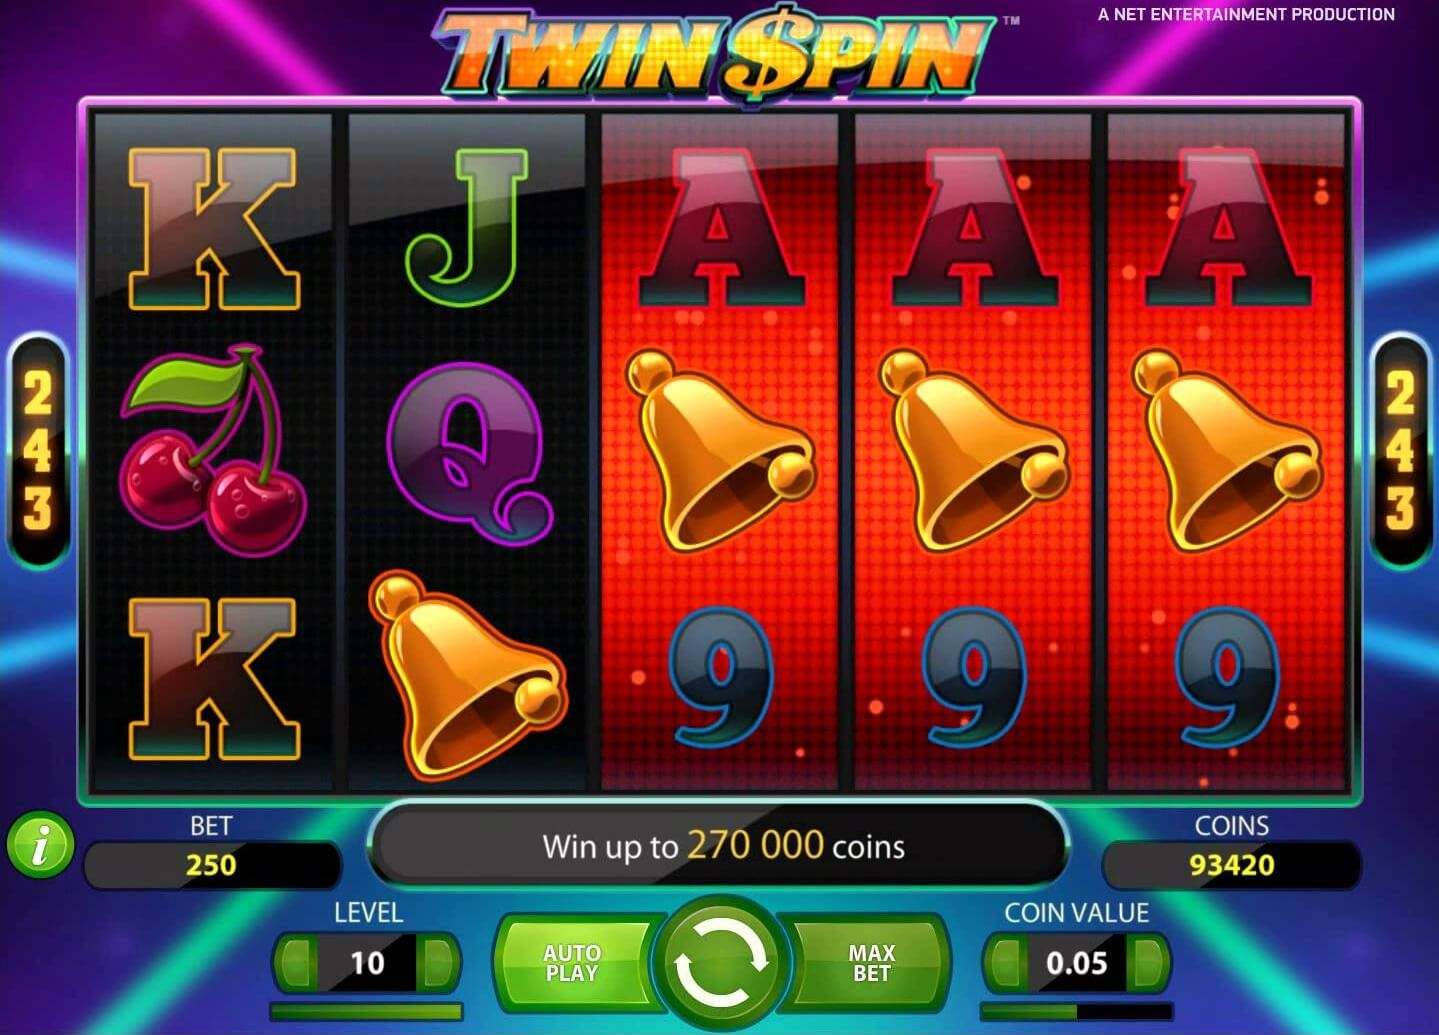 Twin Spin Slot Game Symbols and Winning Combinations